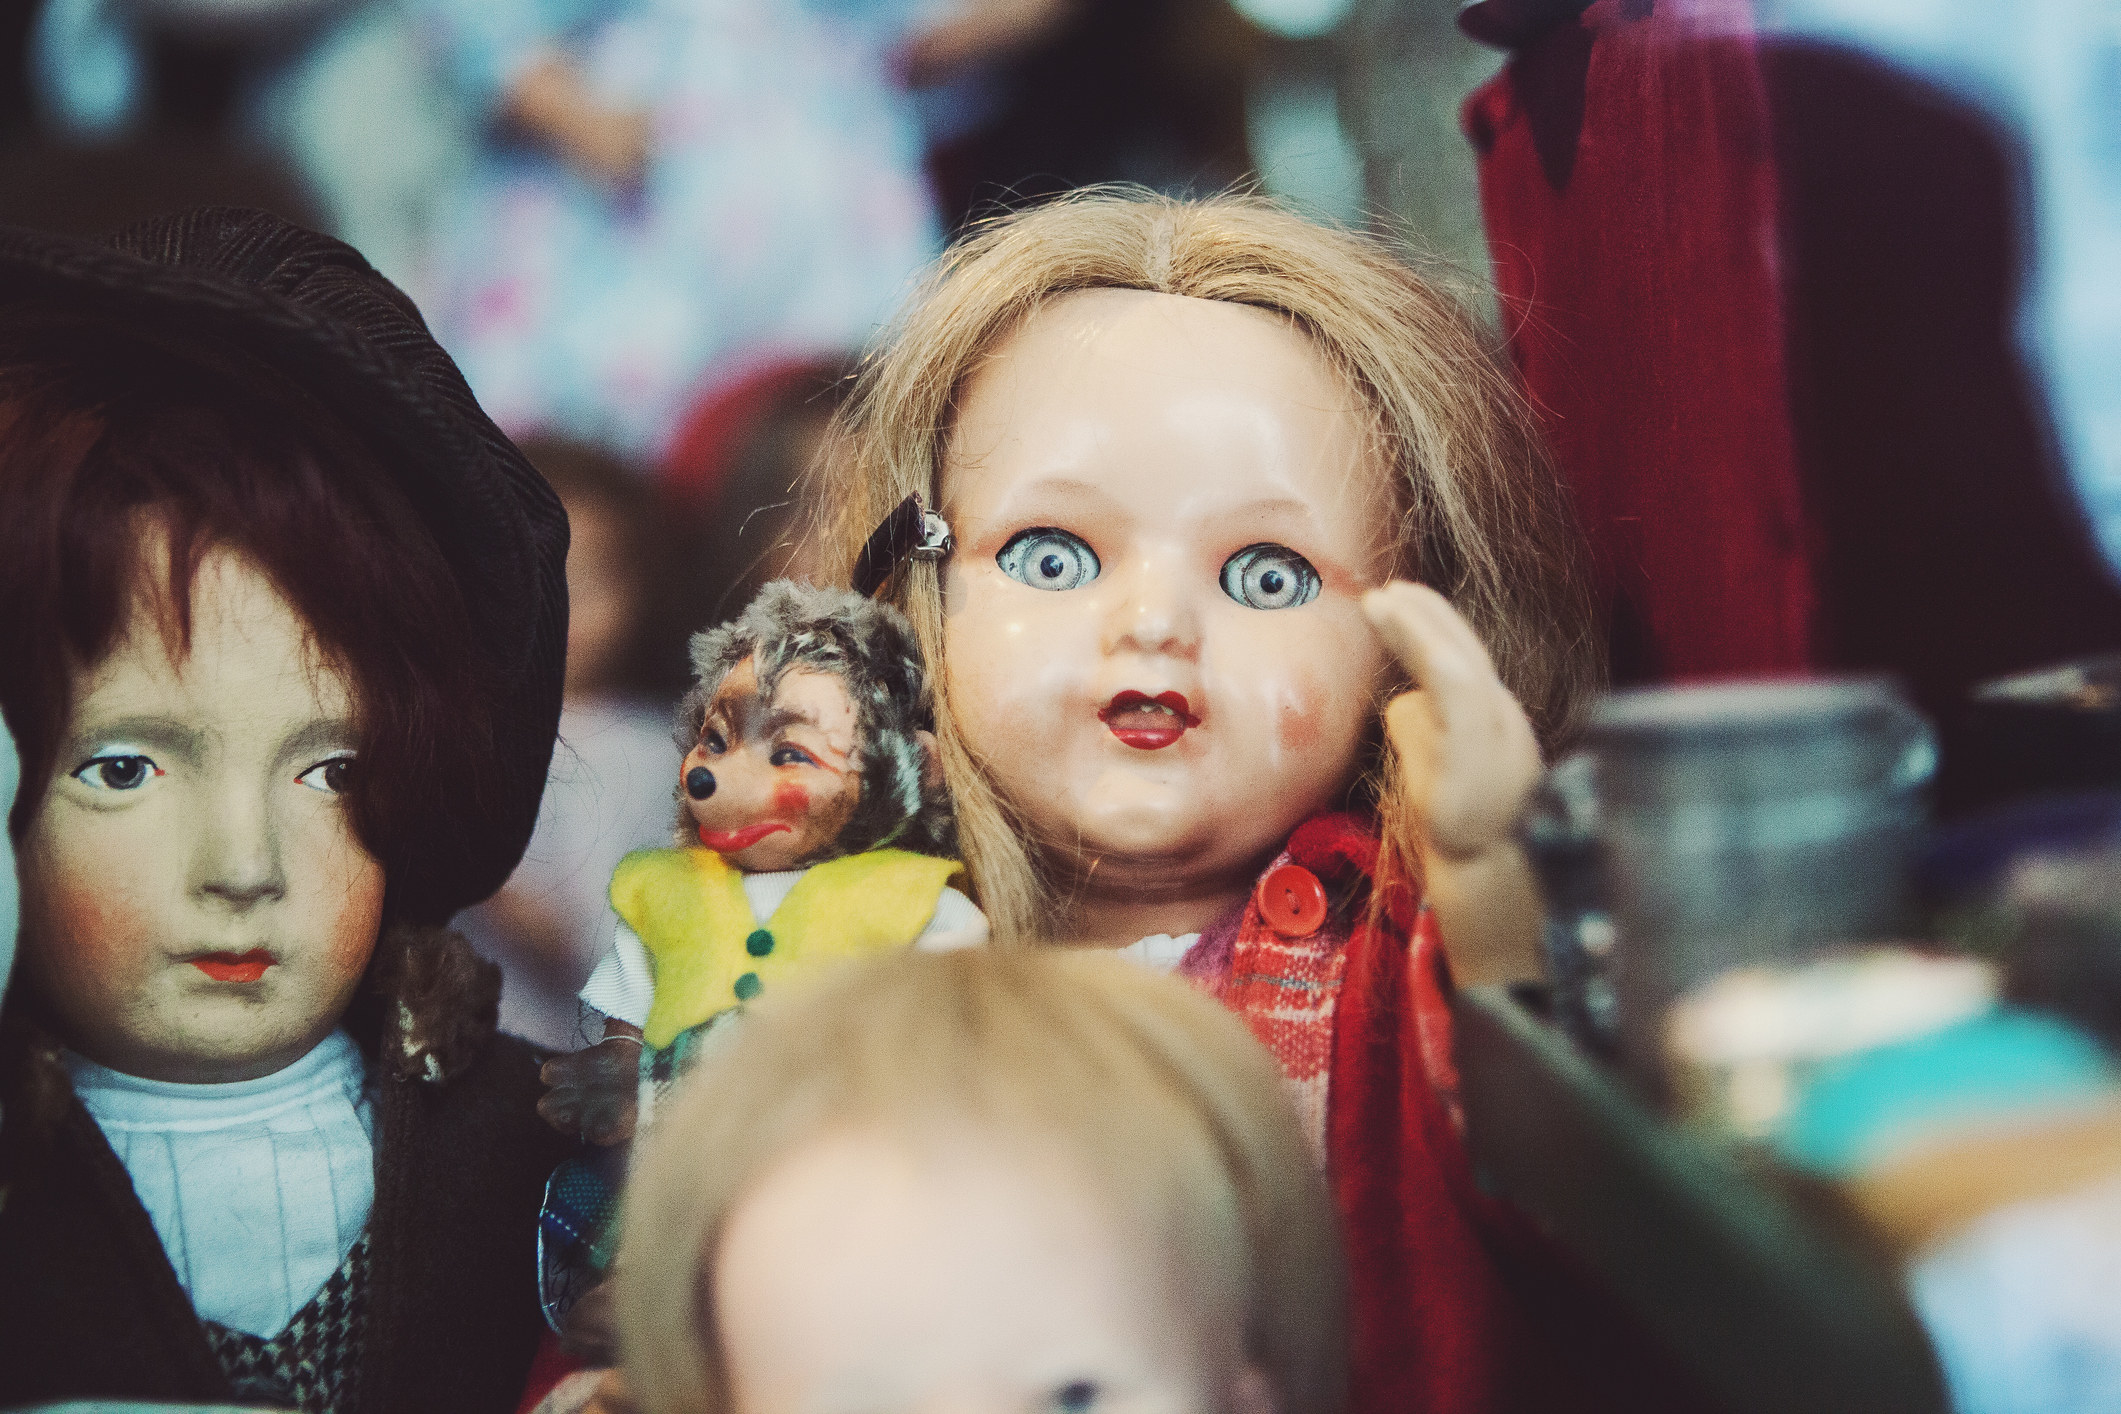 Scary old dolls